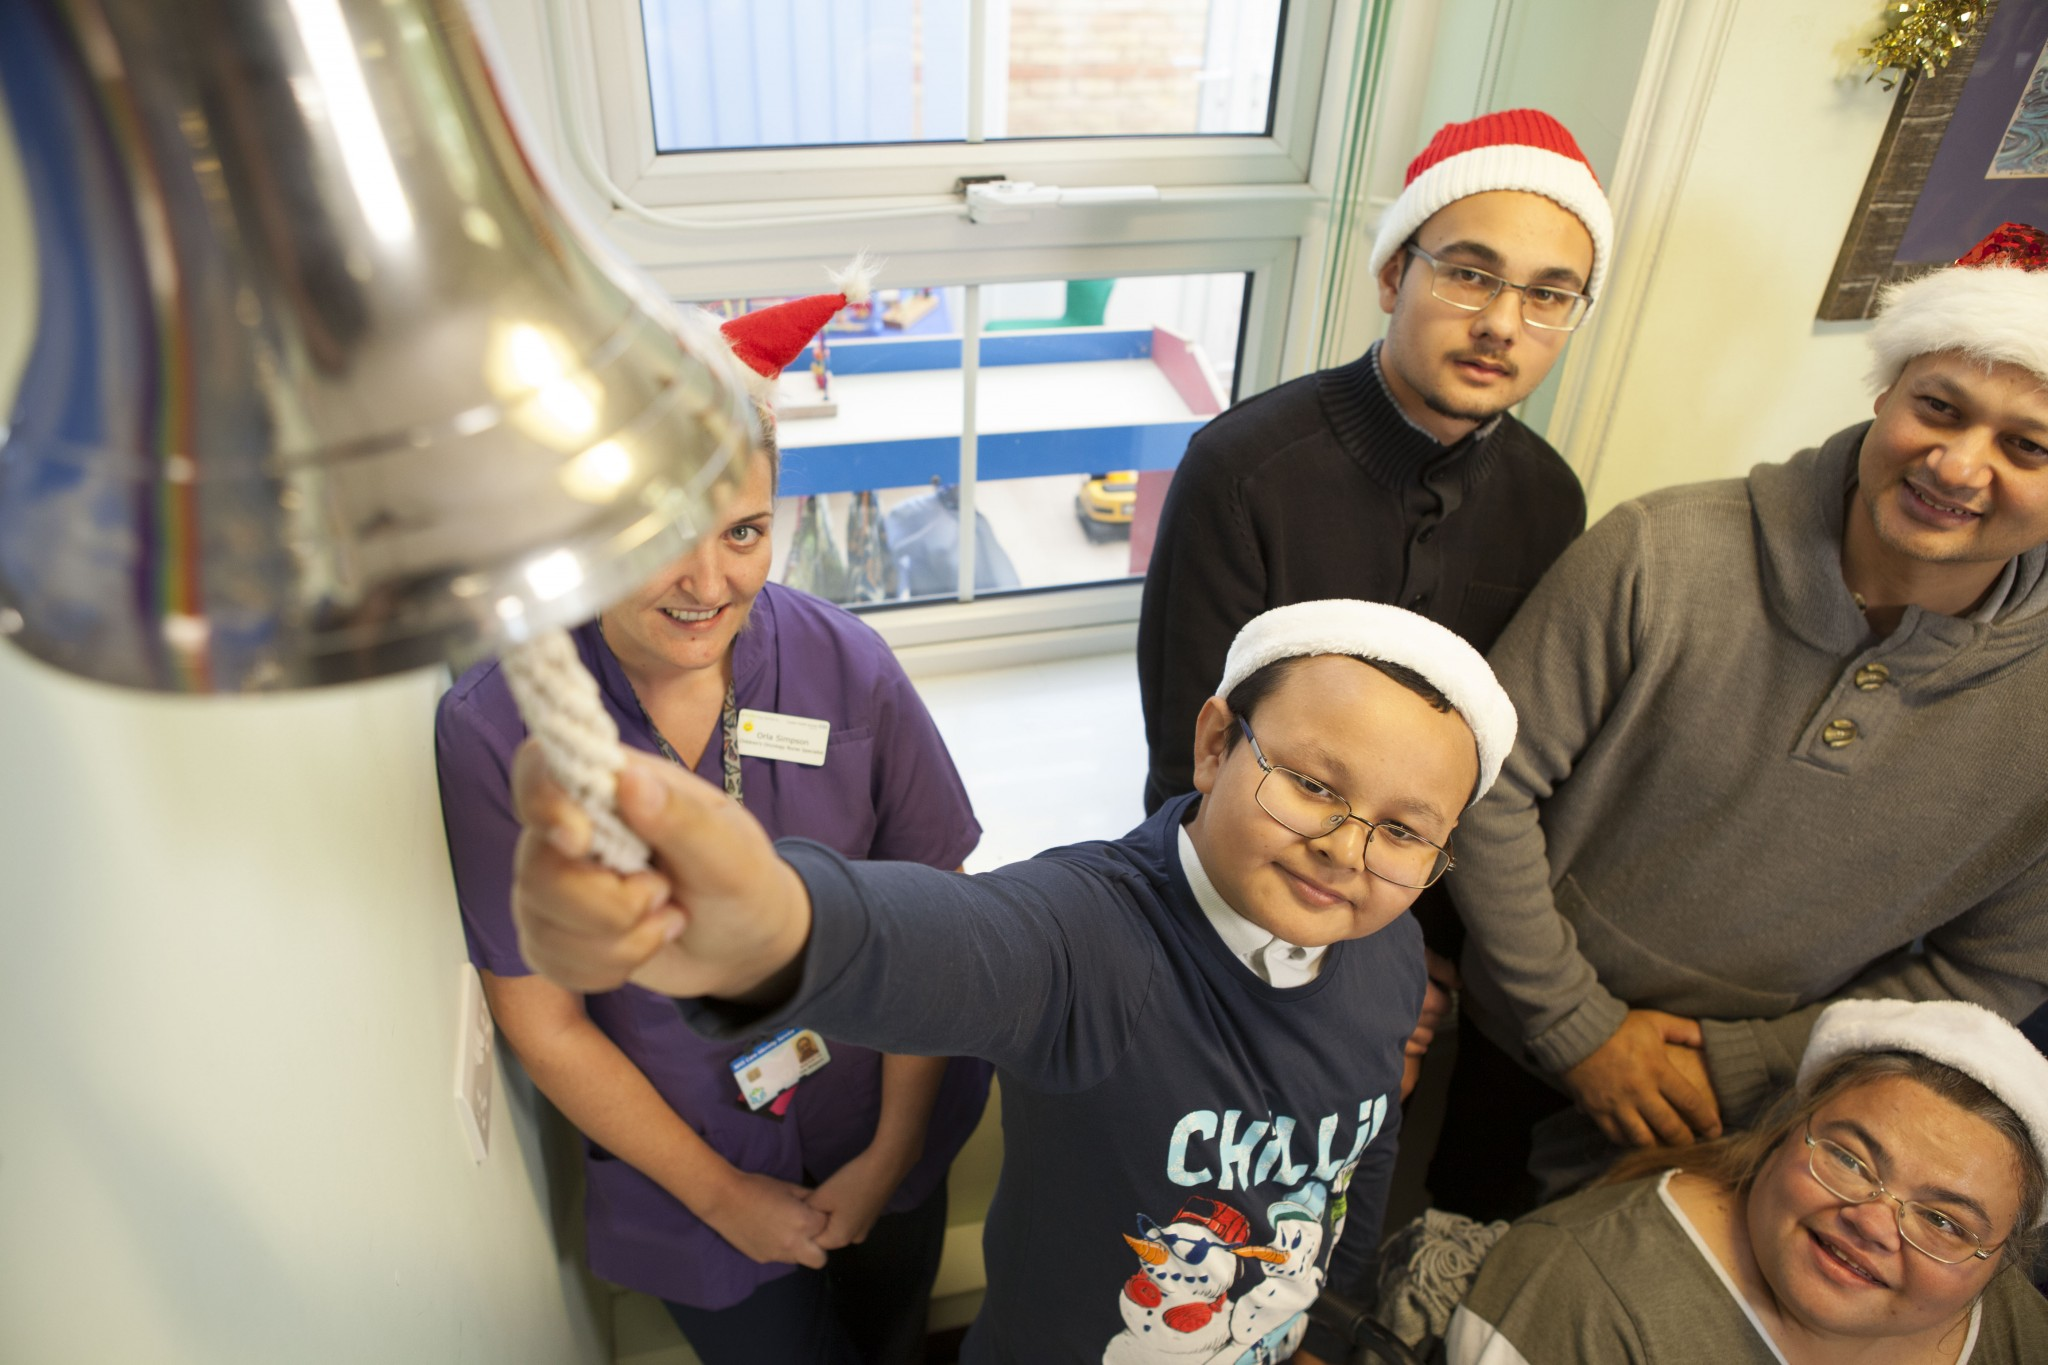 dylan ringing the bell with santa hat